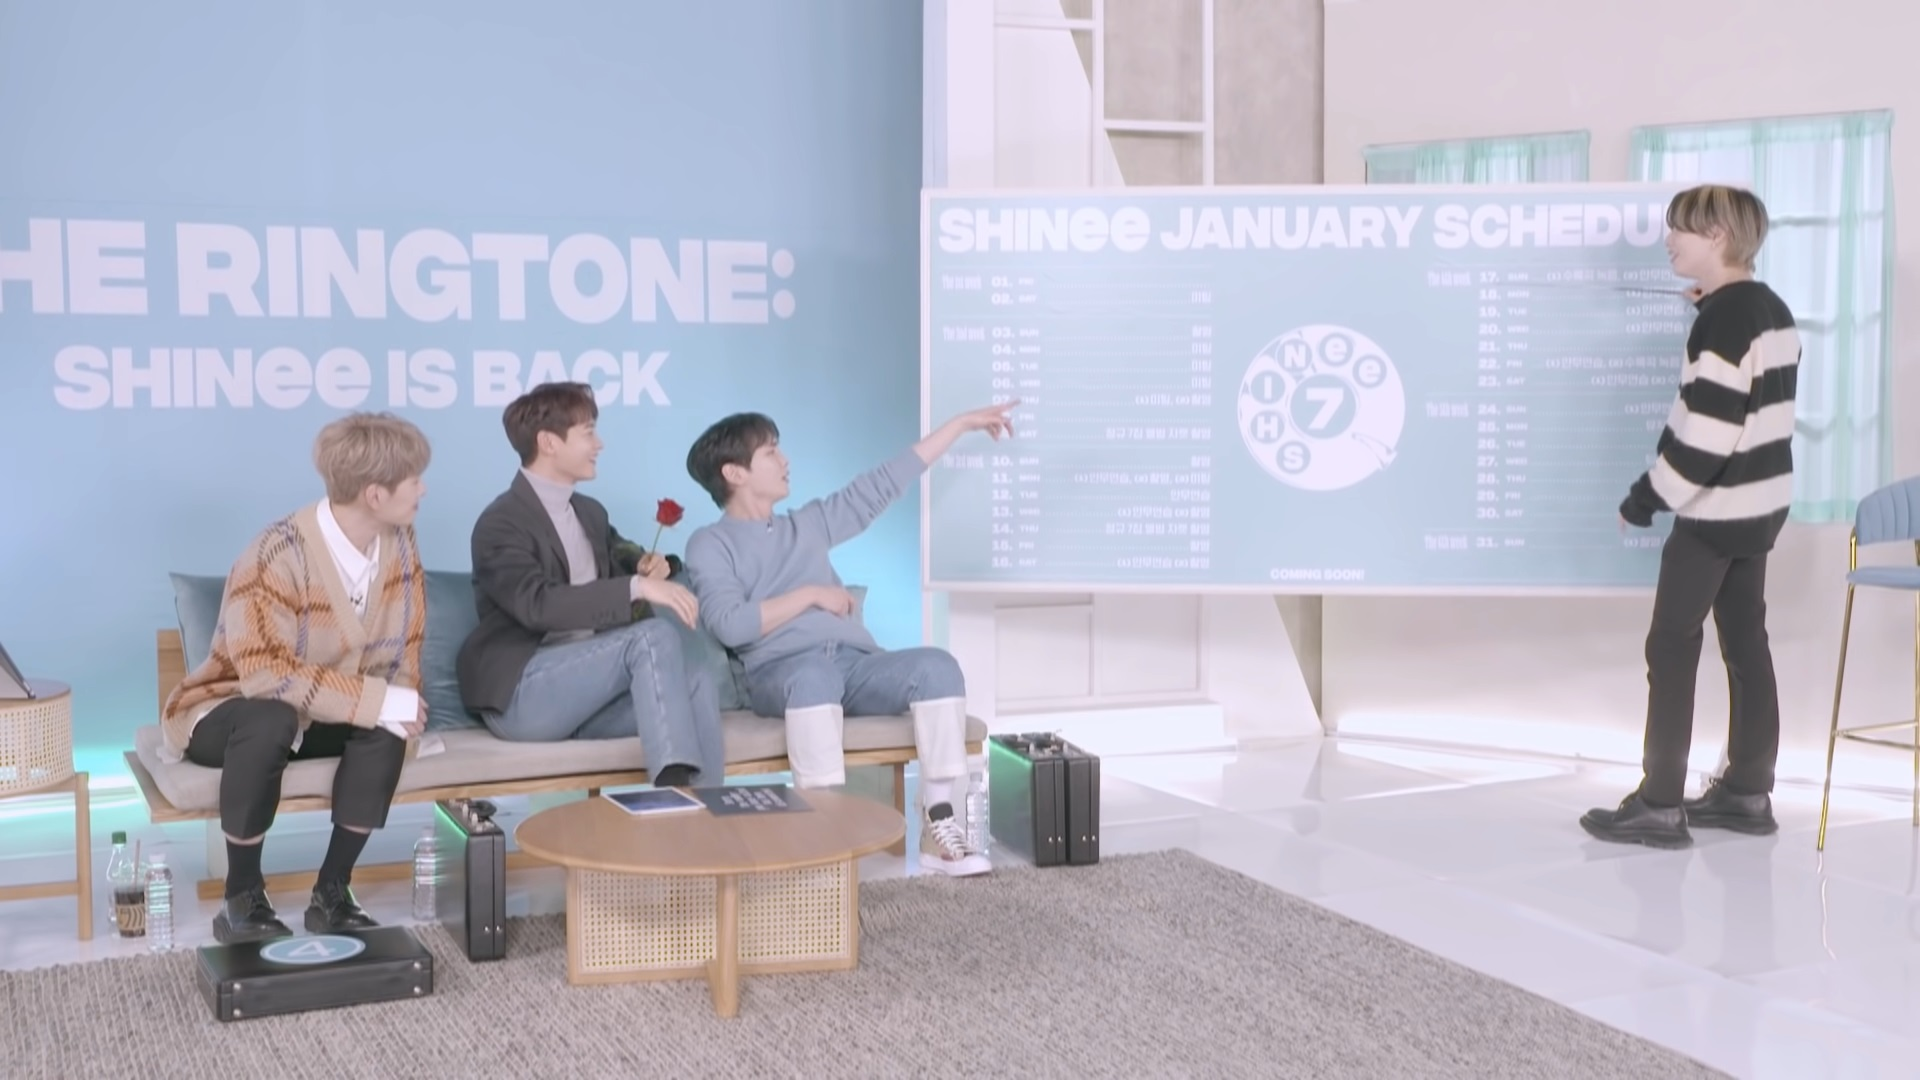 shinee 13th anniversary - what to expect